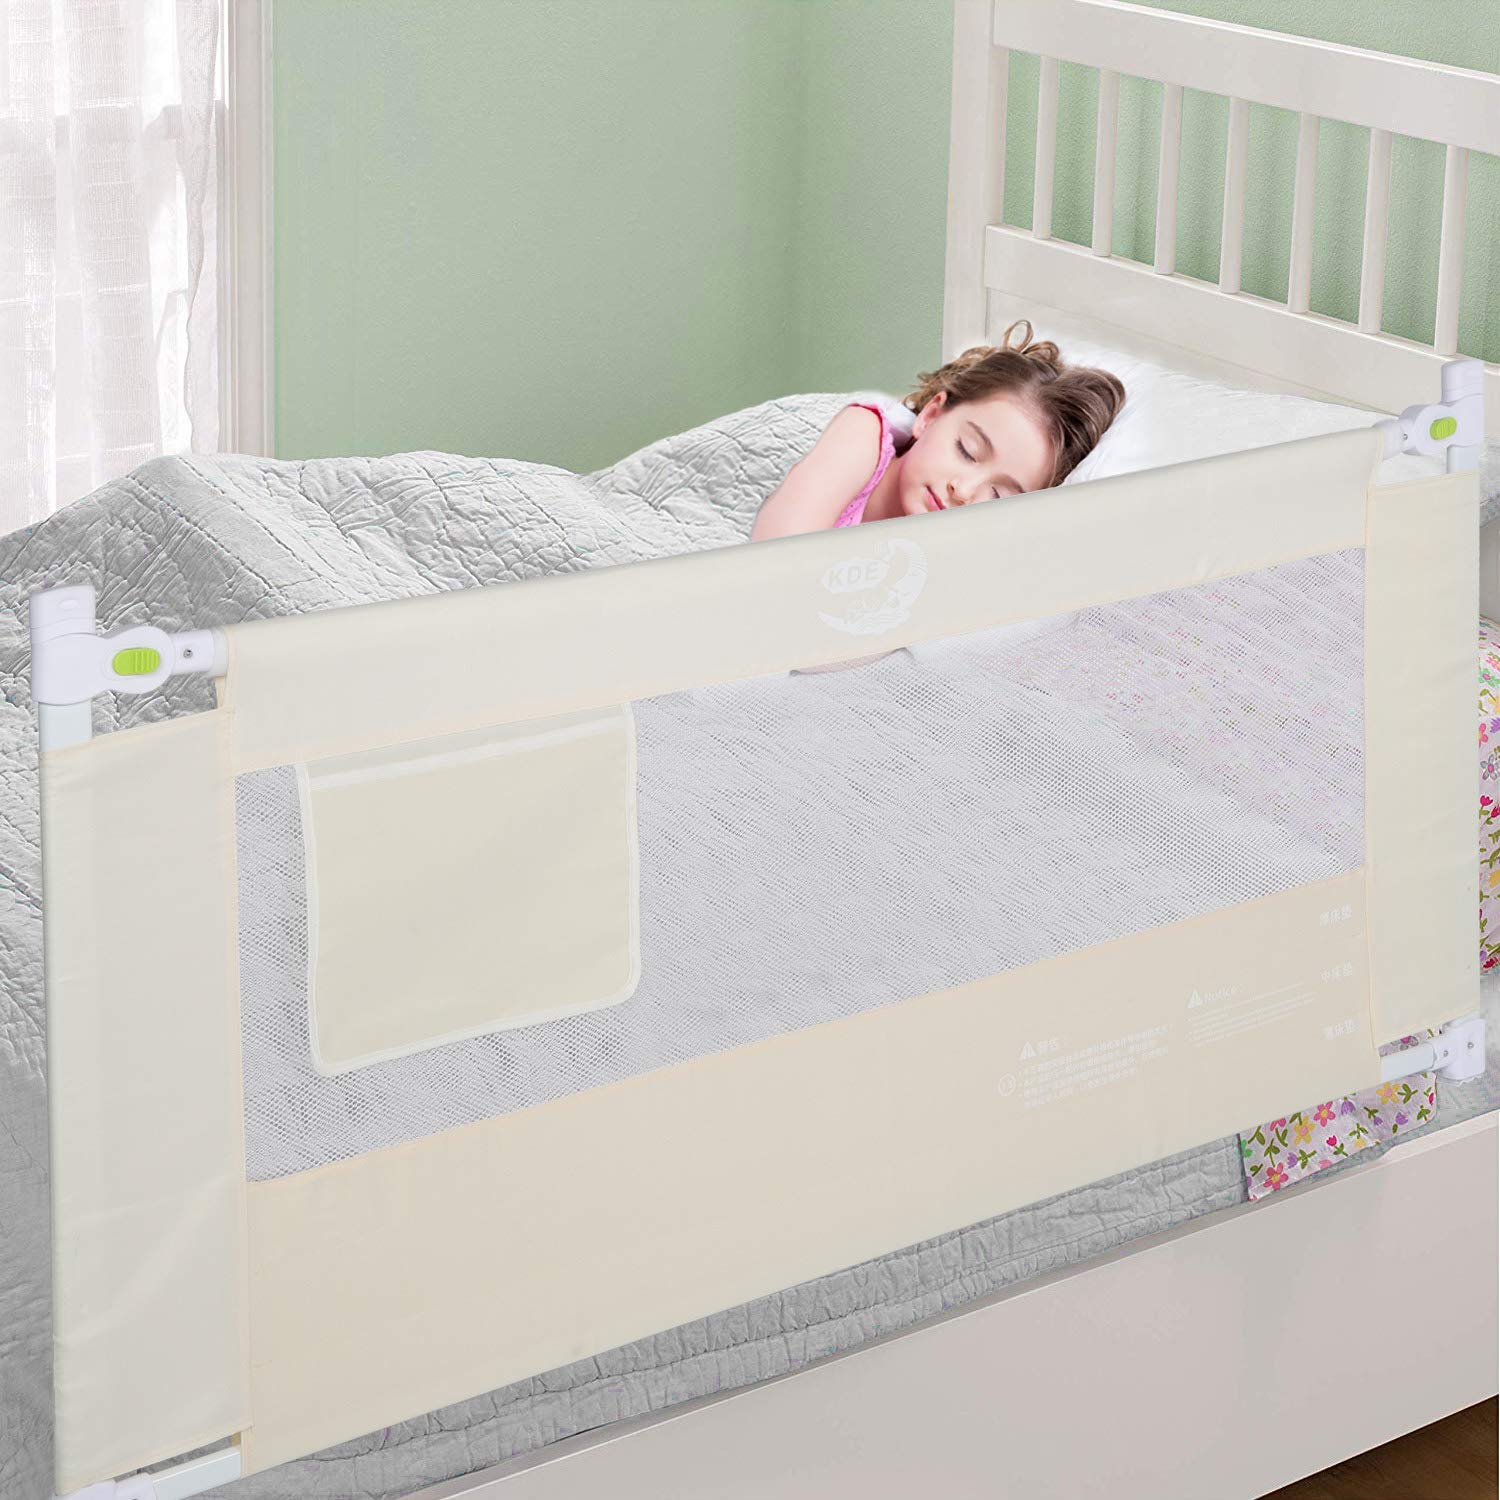 Bed Rail for Toddler, Foldable Baby Kids Safety Bedrail 78.7'' Extra Long Fold Down Bed Guardrail for Twin Bed, King Bed, Queen Size Bed - 1 Piece